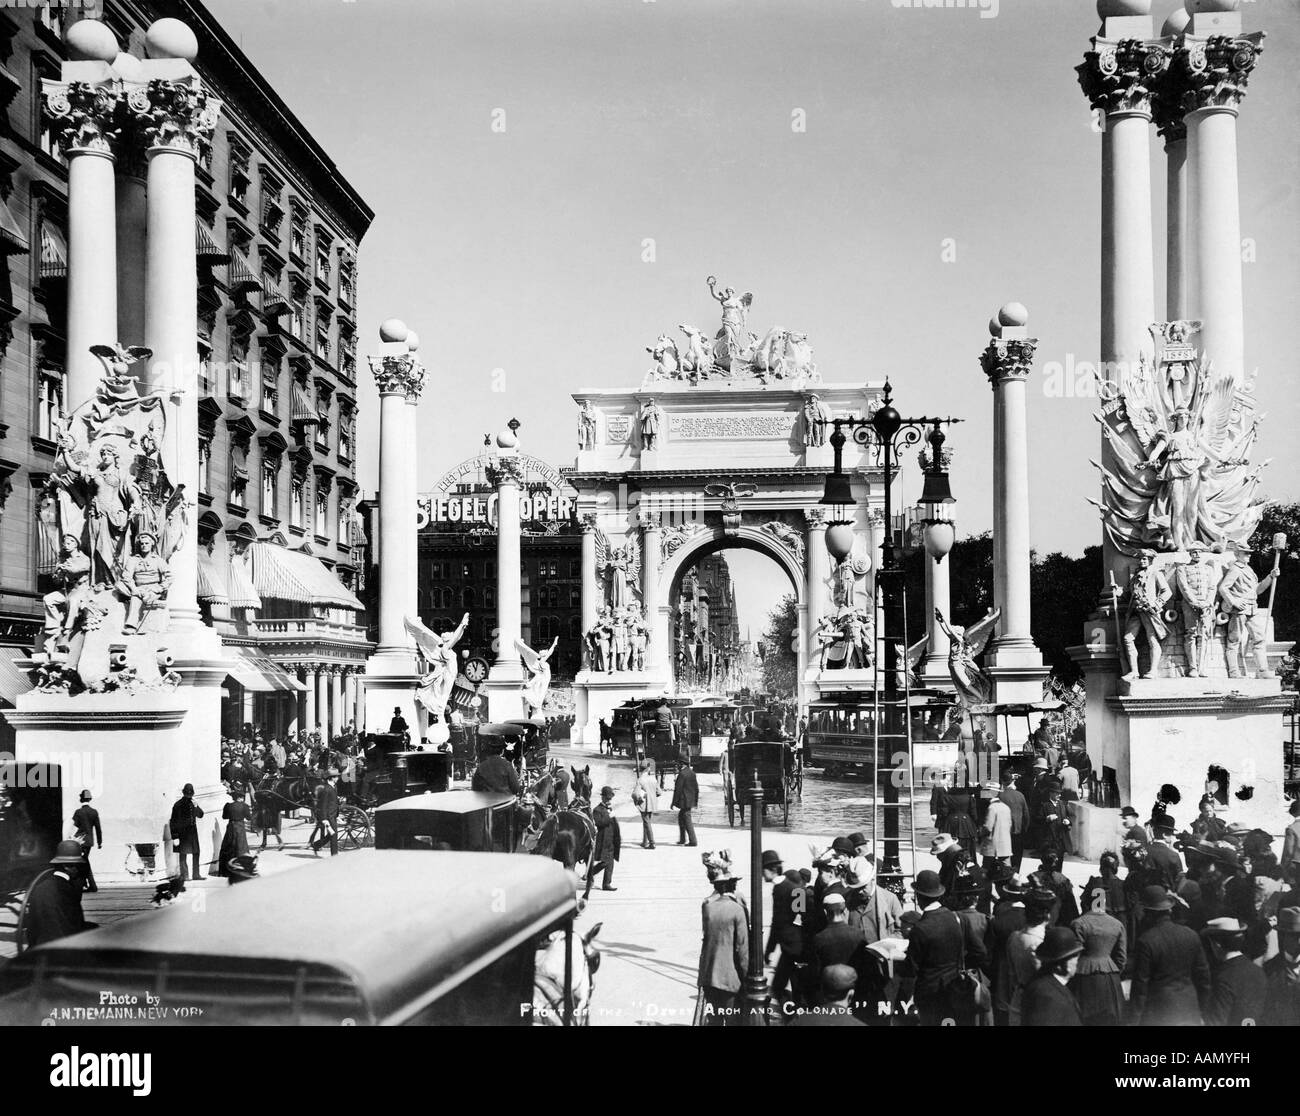 1898 TRIUMPHAL WOOD PLASTER ARCH COLUMNS MADISON SQUARE PARK NYC CELEBRATE COMMODORE DEWEY MANILA VICTORY SPANISH - Stock Image